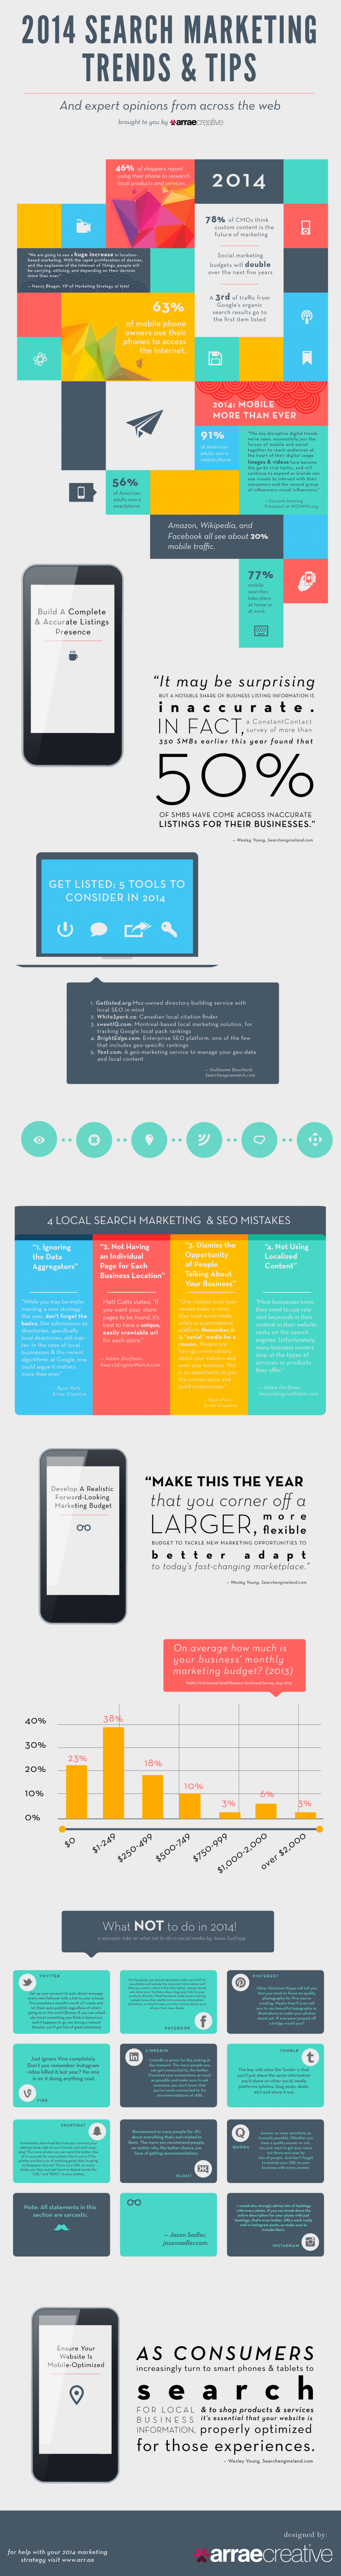 2014 Online Marketing Trends & Tips Infographic